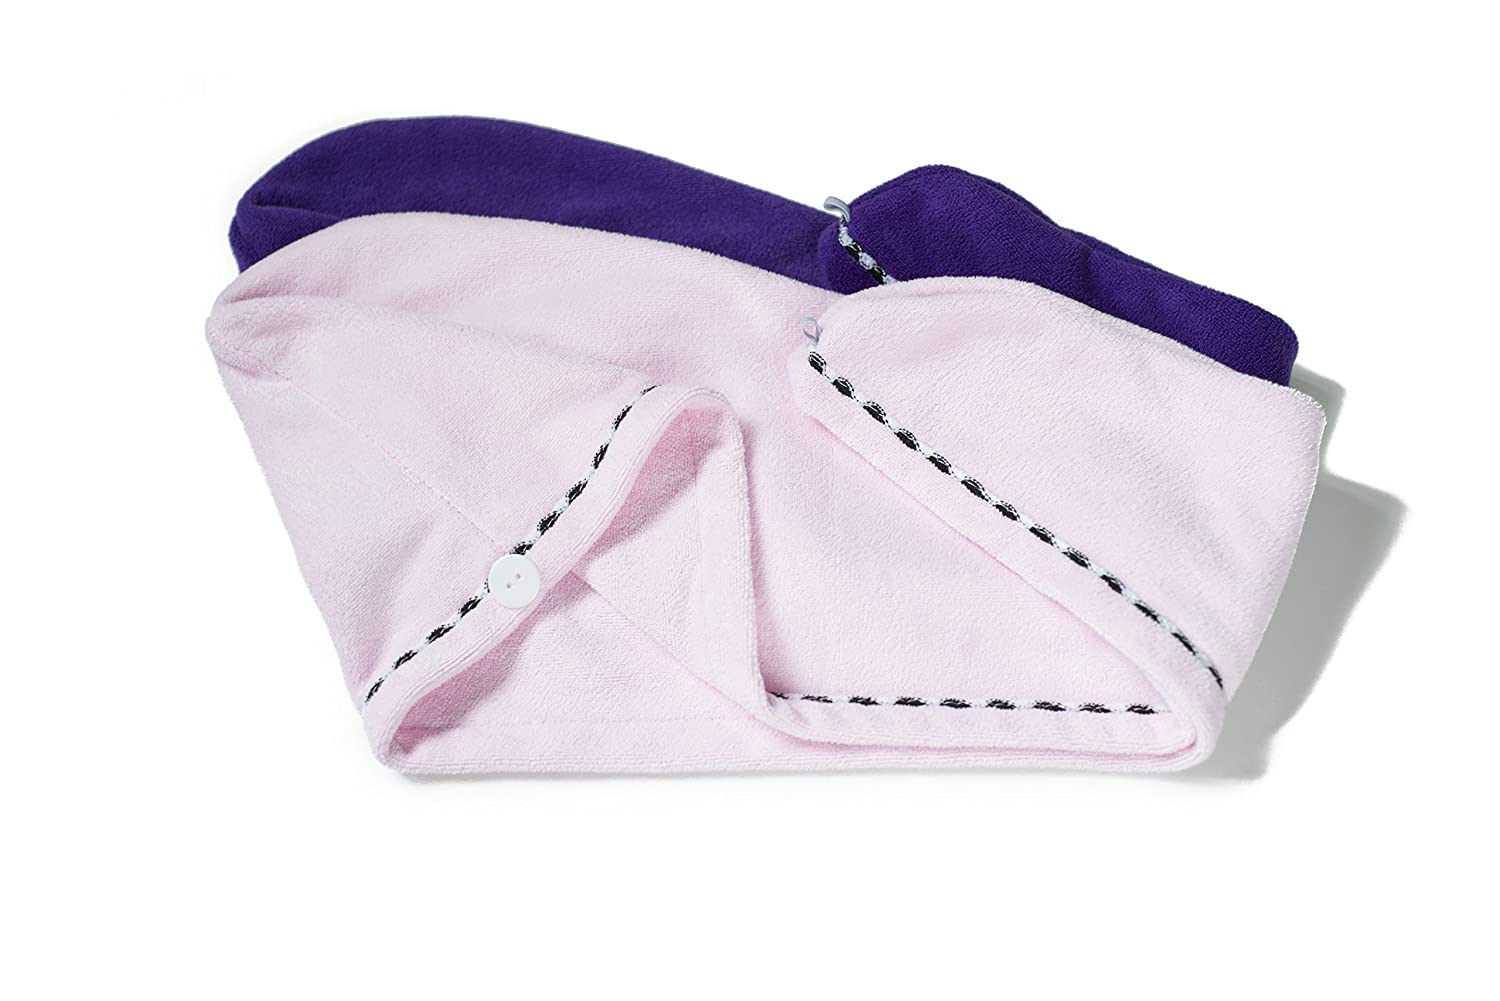 Hair Drying Towel Super Absorbent Max 68% OFF Turban Excellent Pack Wrap - 2 Pu Style